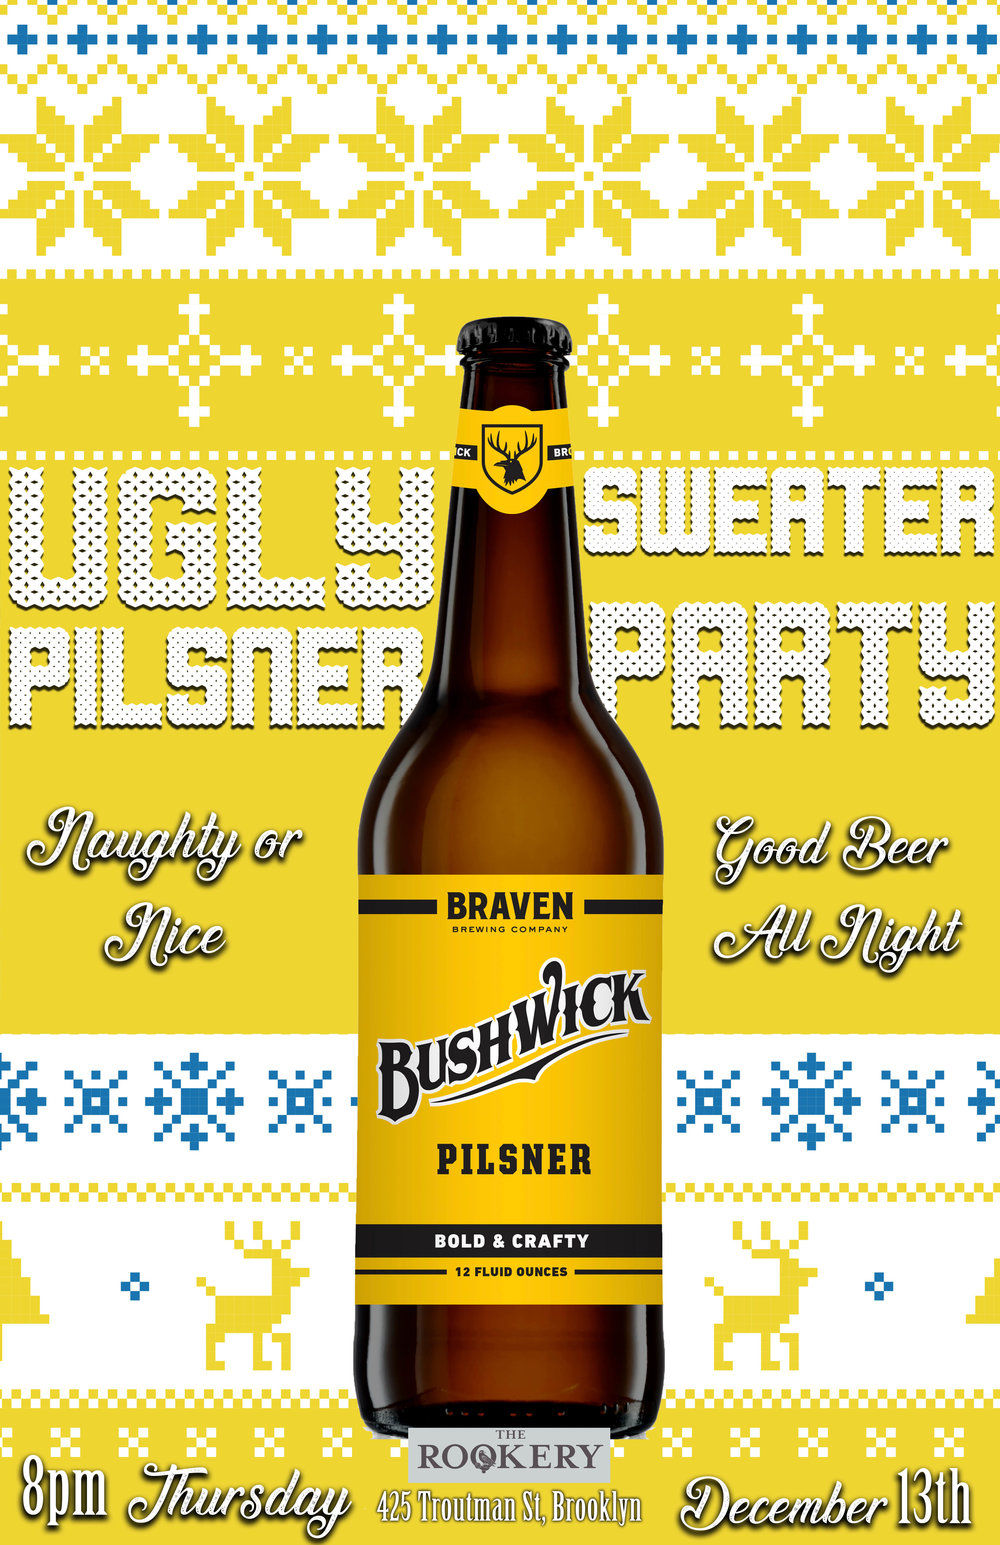 THE ROOKERY_BRAVEN PILSNER SWEATERS.jpg